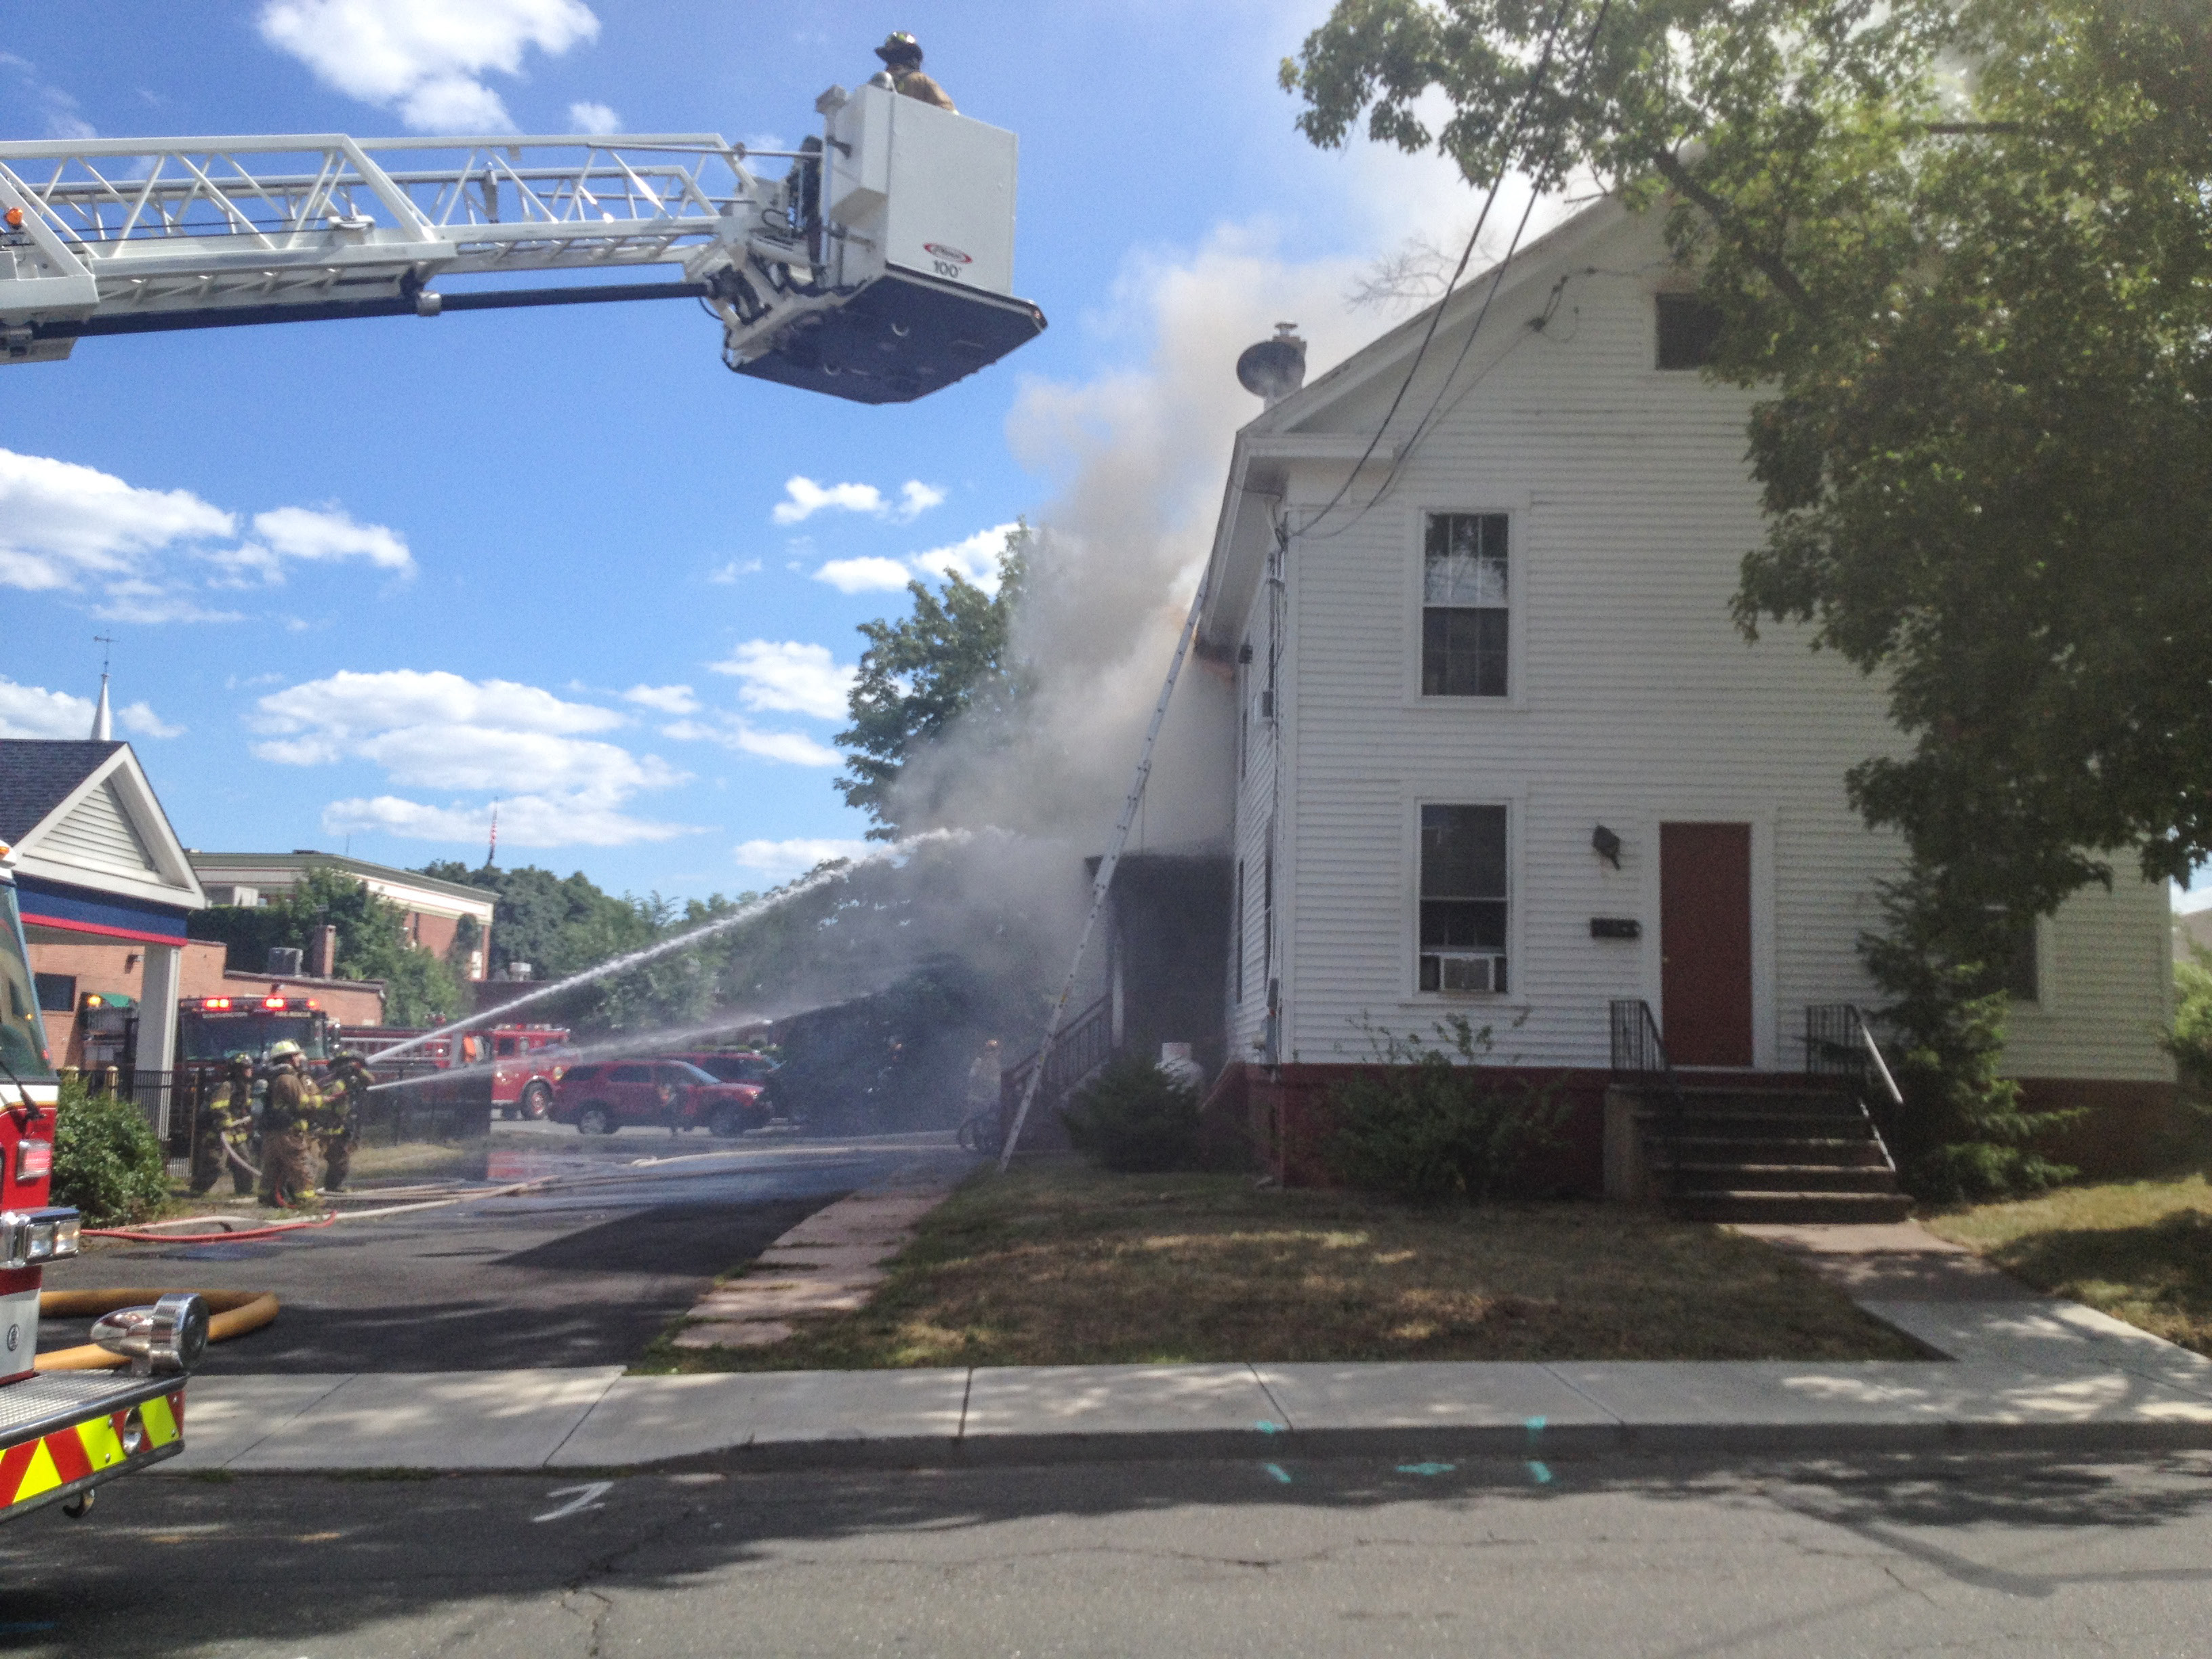 Southington firefighters battle a fire at a home on High Street Wednesday afternoon July 27, 2016. | Dave Zajac, Record-Journal